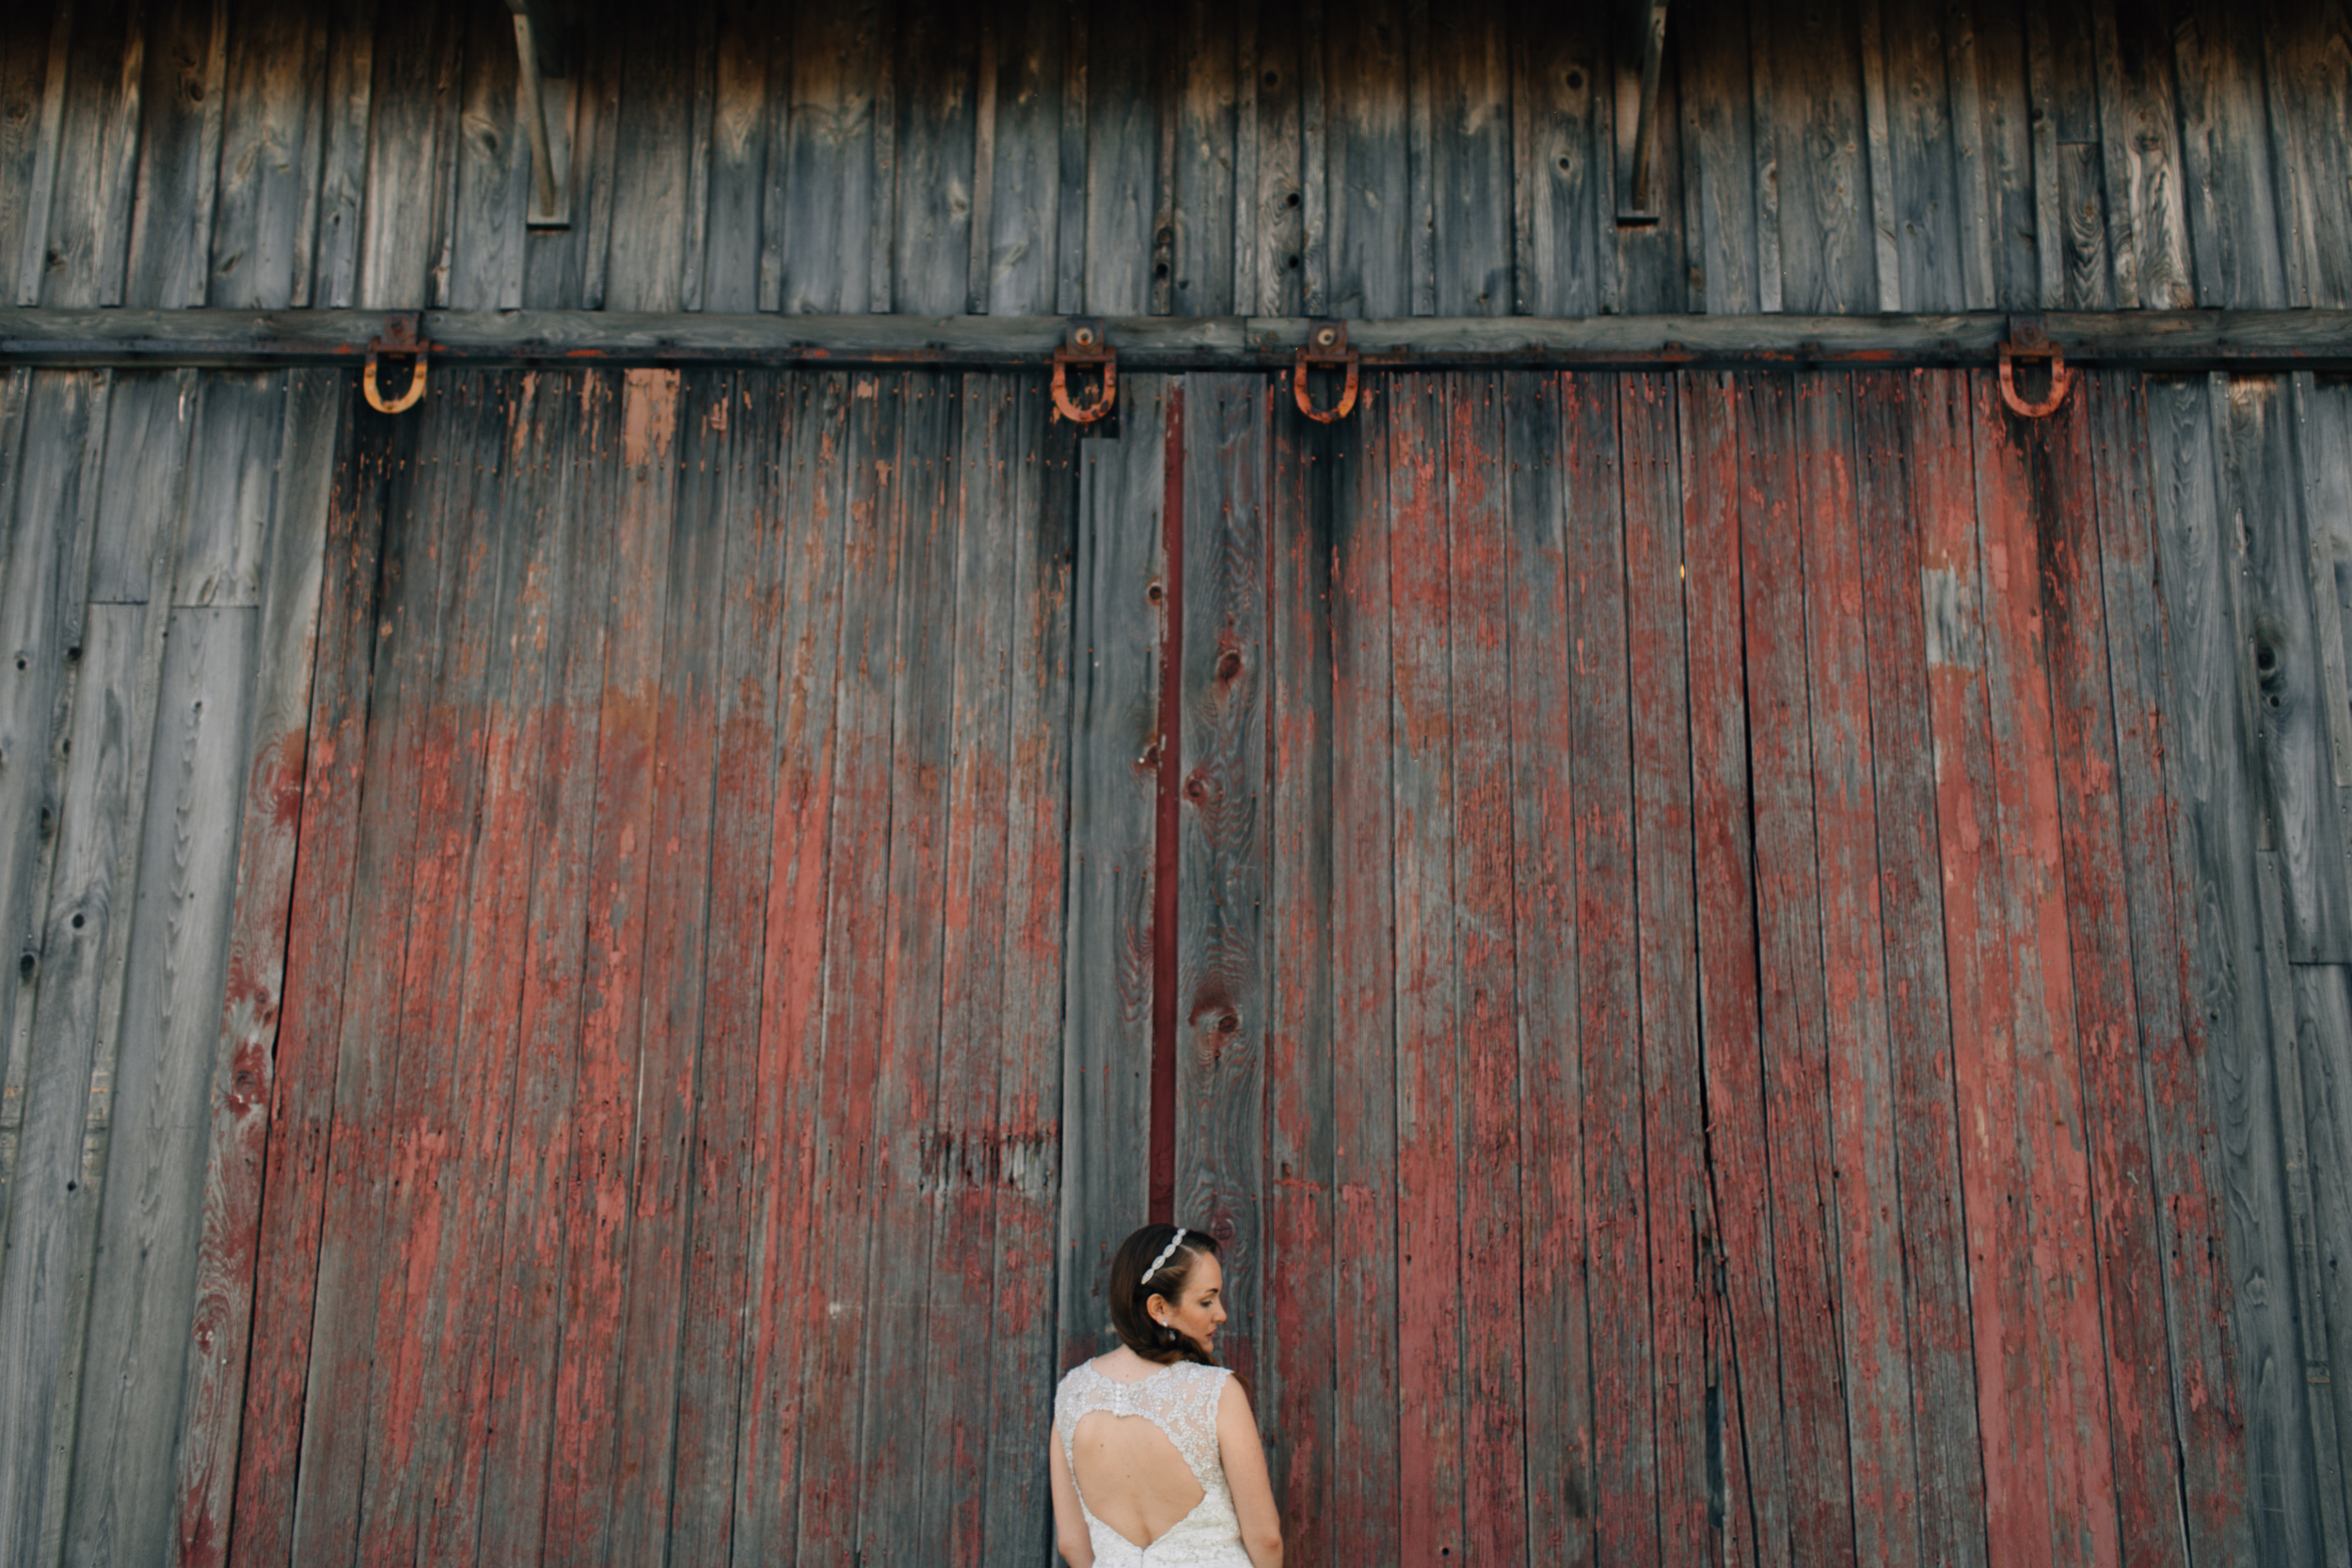 KELLIandBRADweddingJUNE2015 - portraits (41 of 142).jpg